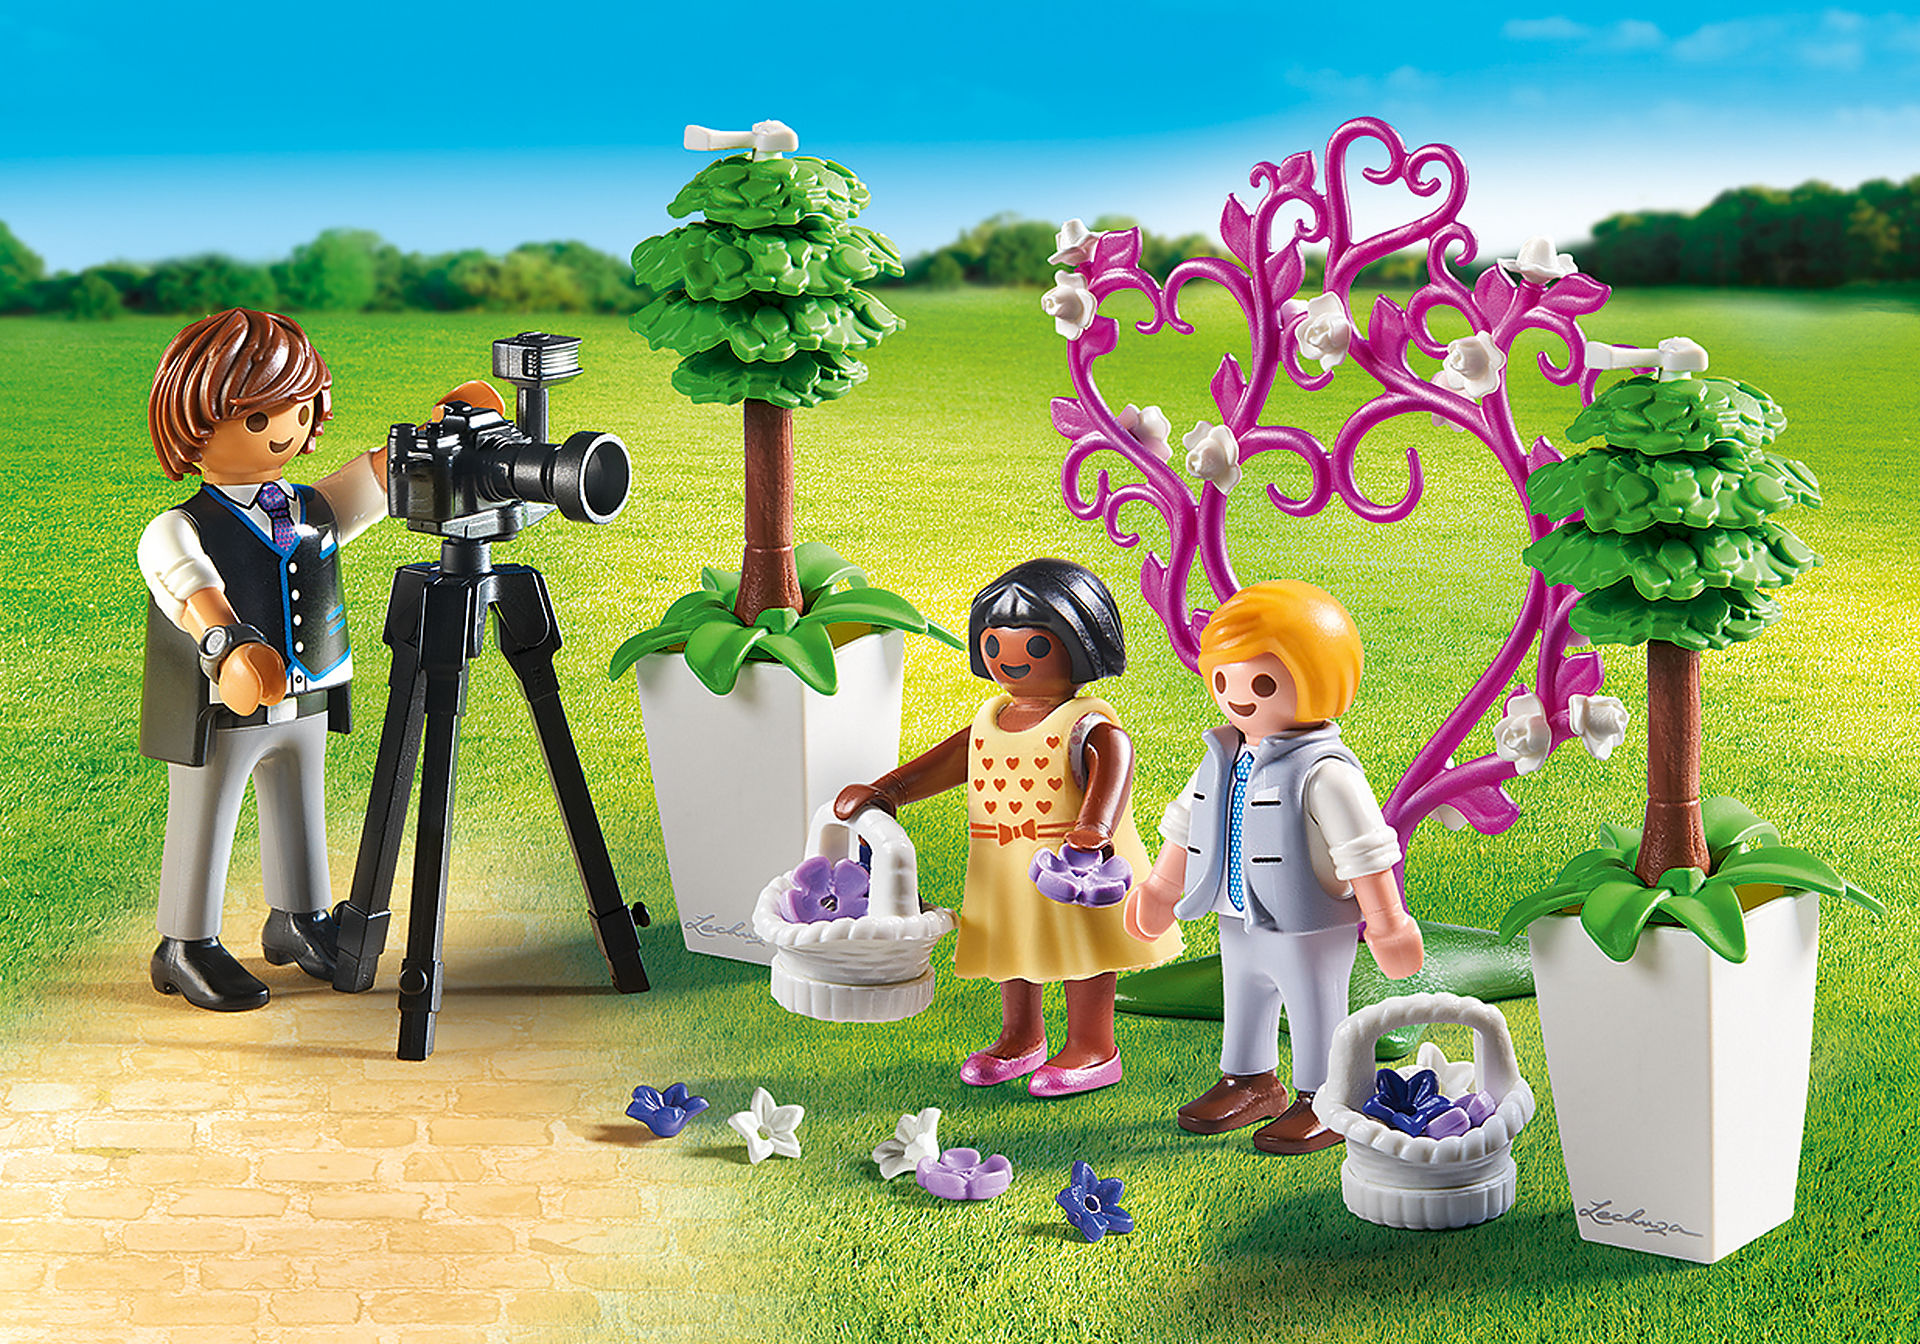 http://media.playmobil.com/i/playmobil/9230_product_detail/Enfants d'honneur avec photographe